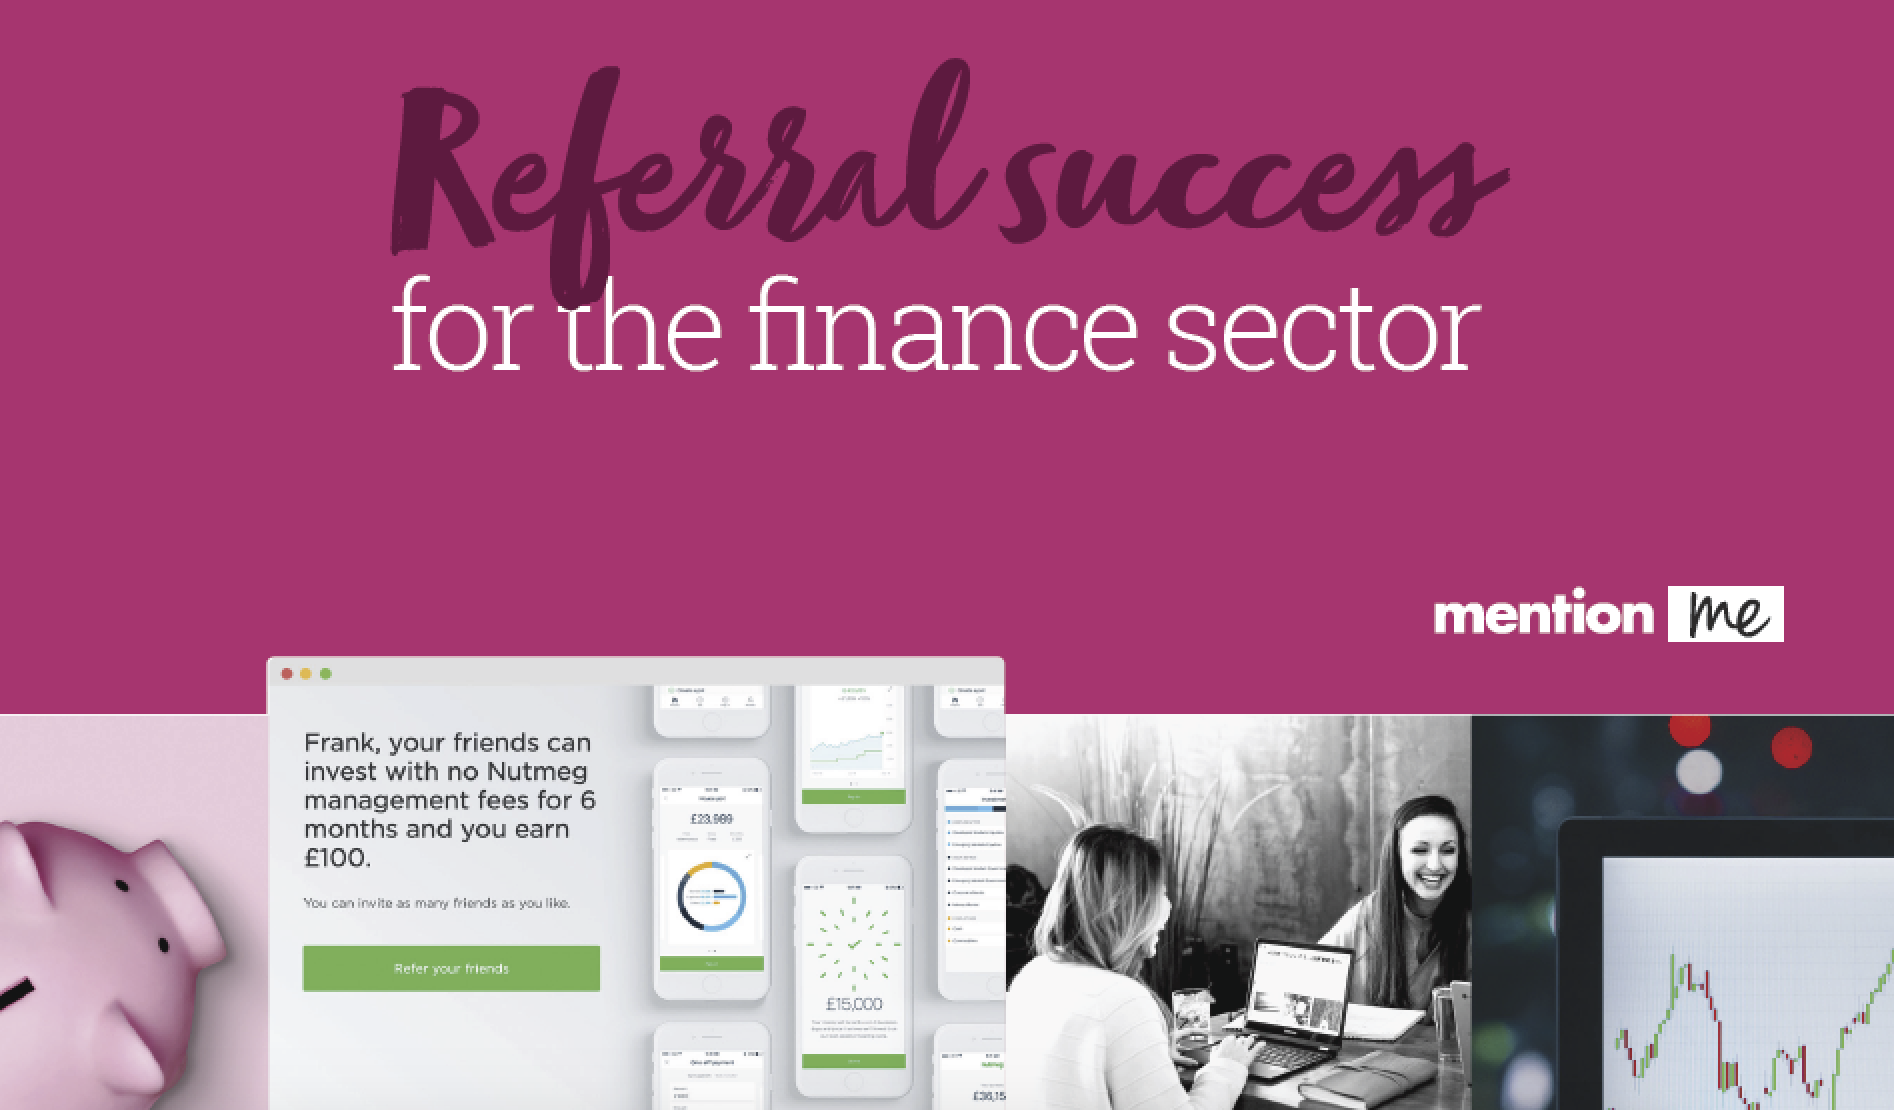 Guide to Referral Success for the Finance Sector